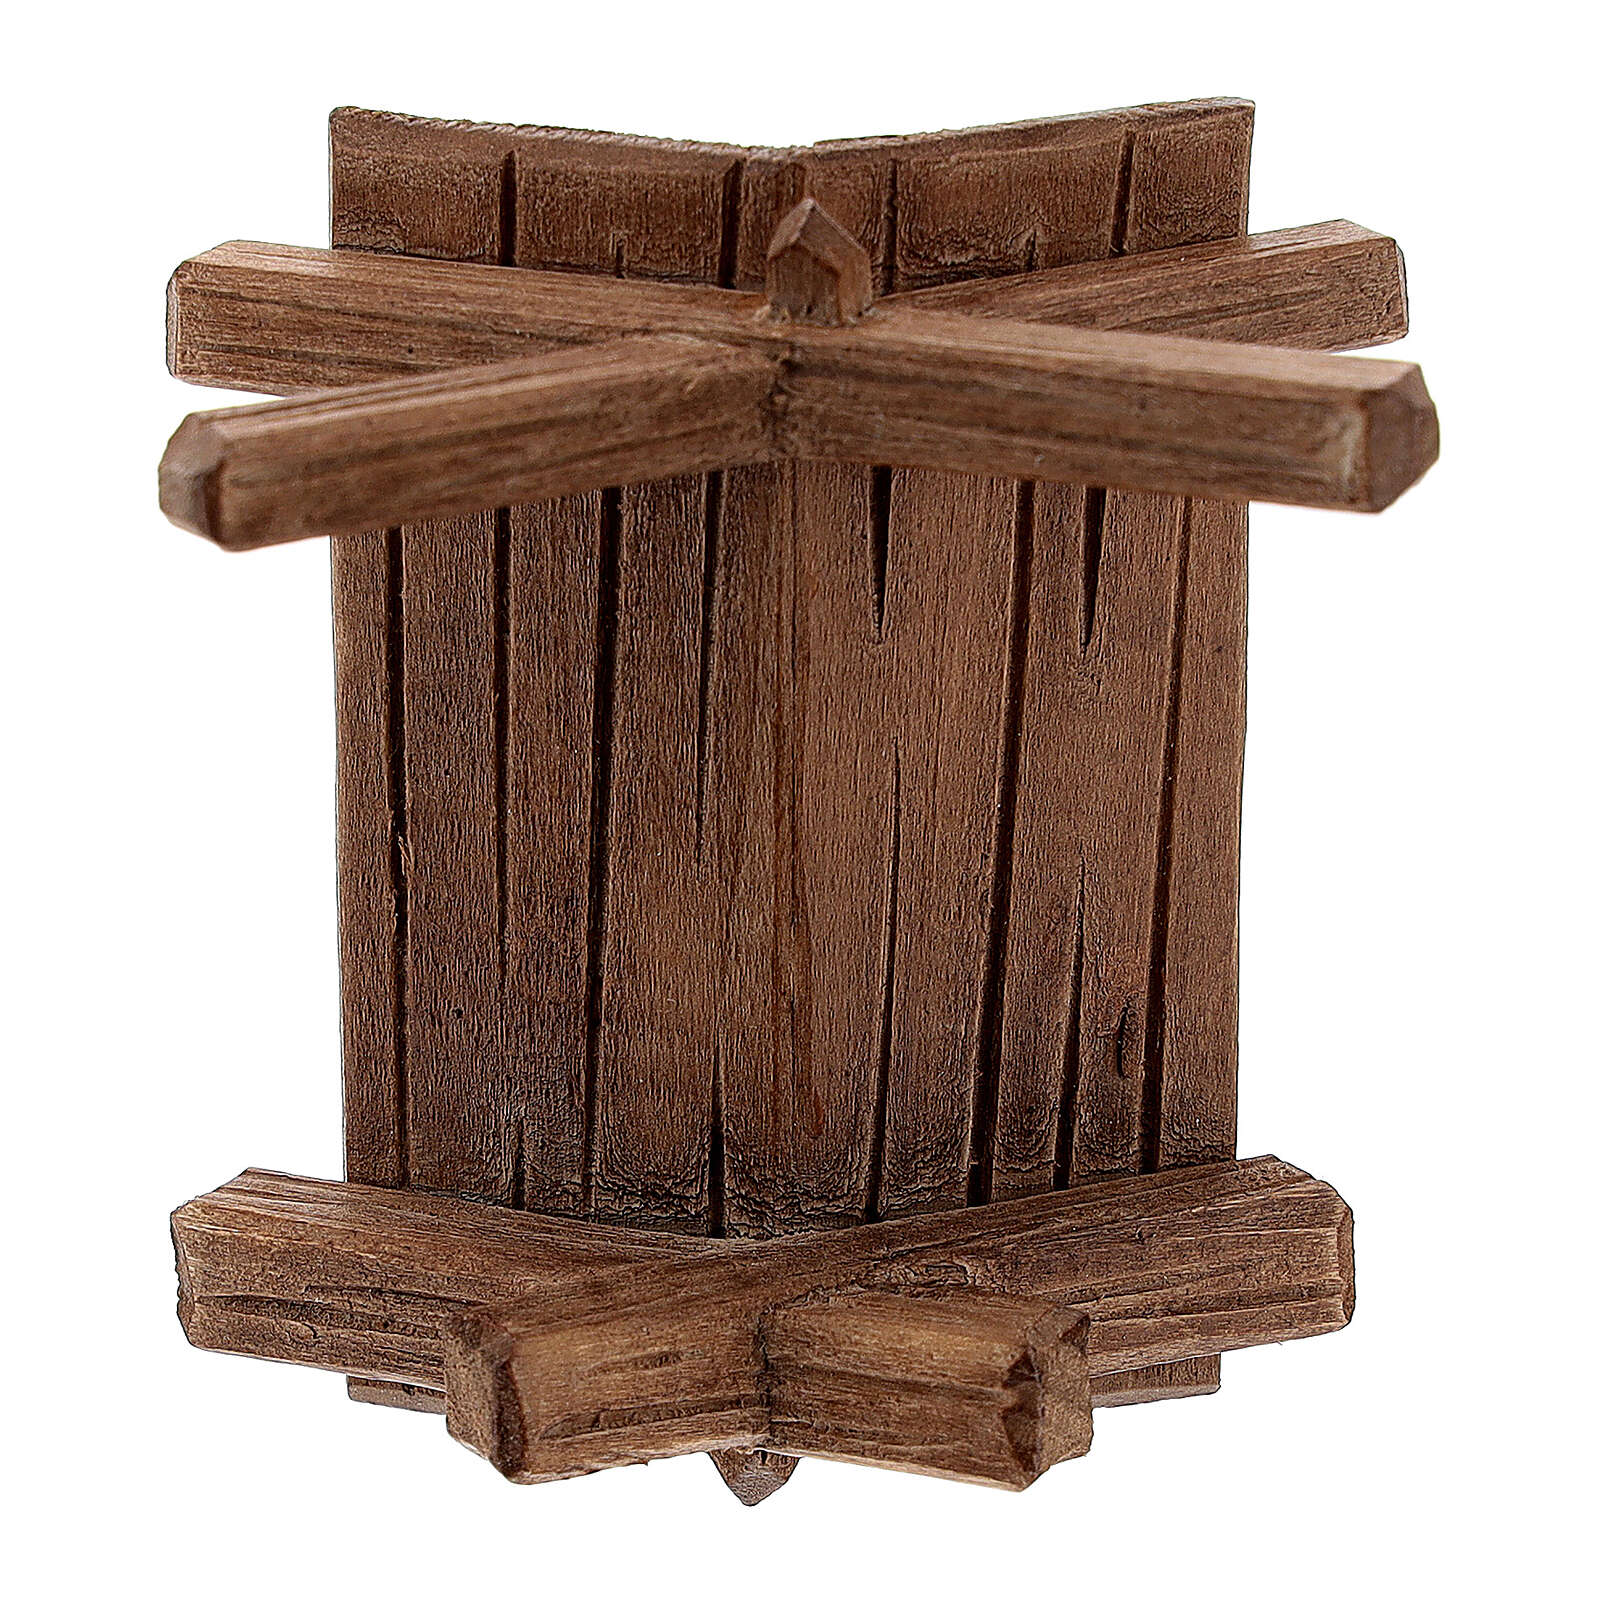 Basic manger for Baby Jesus 11 cm, nativity Rainell, in painted wood 4